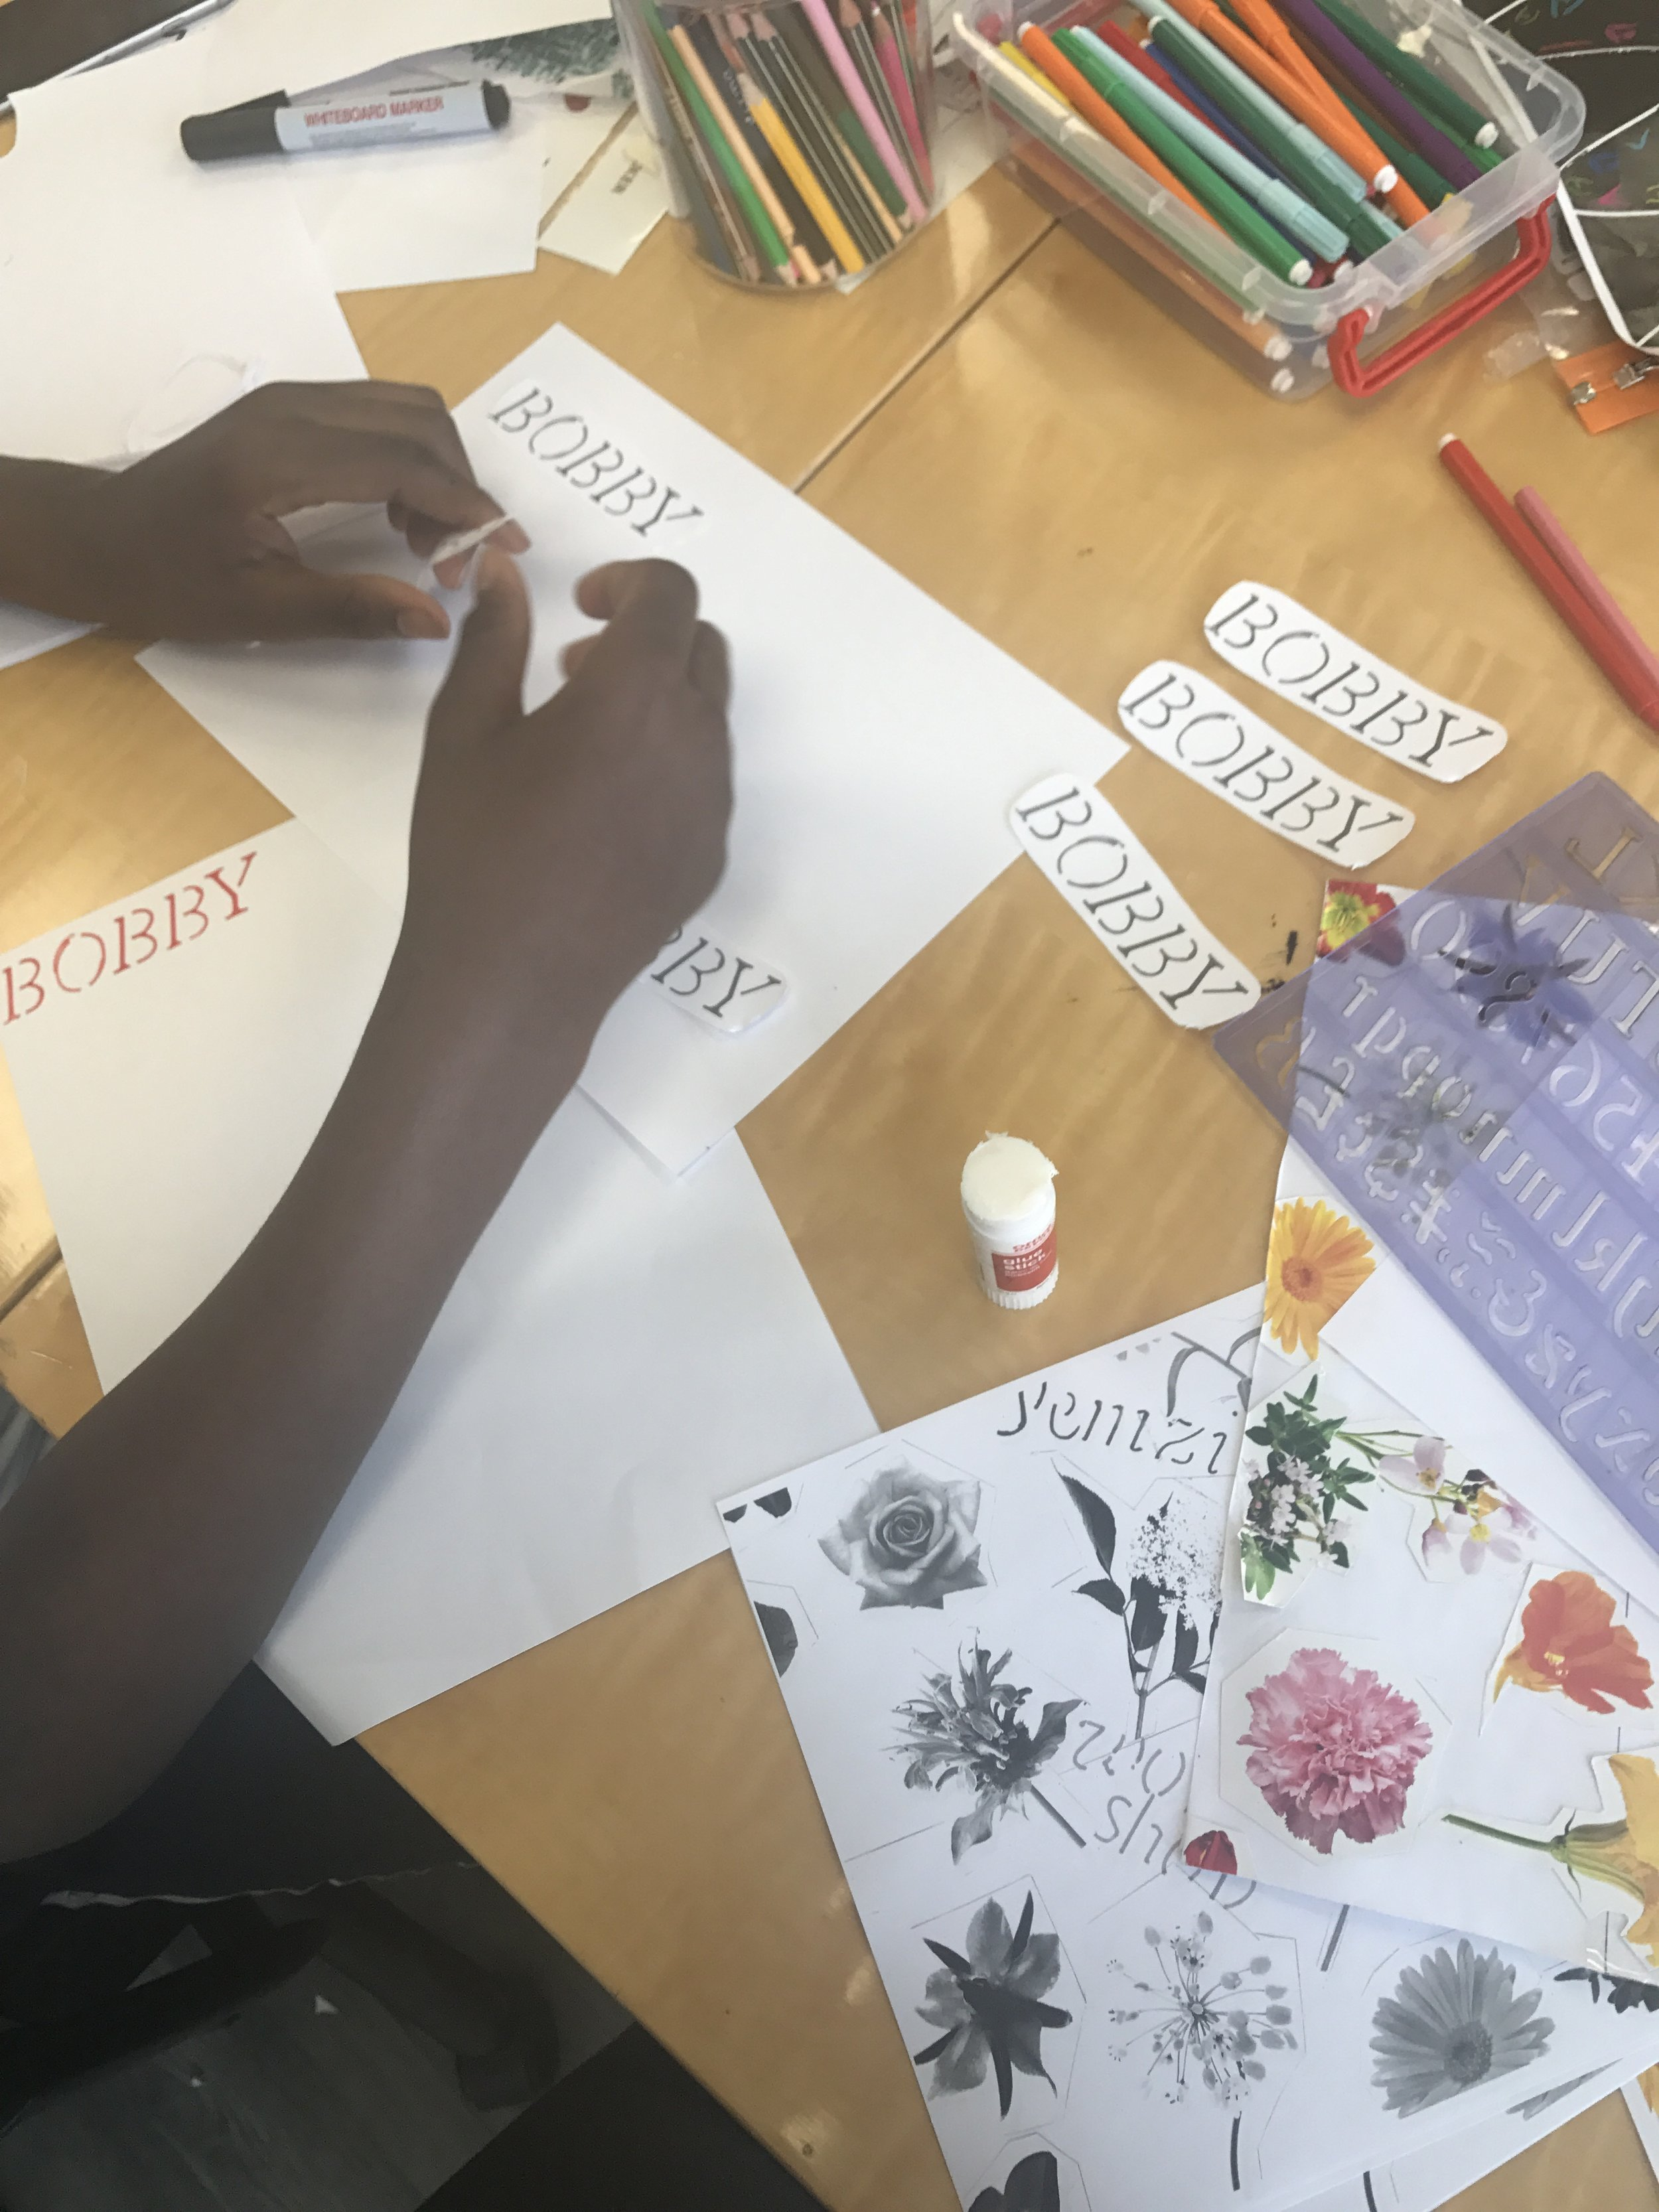 The last workshop was in August with secondary school students at Inspire!, Dalston